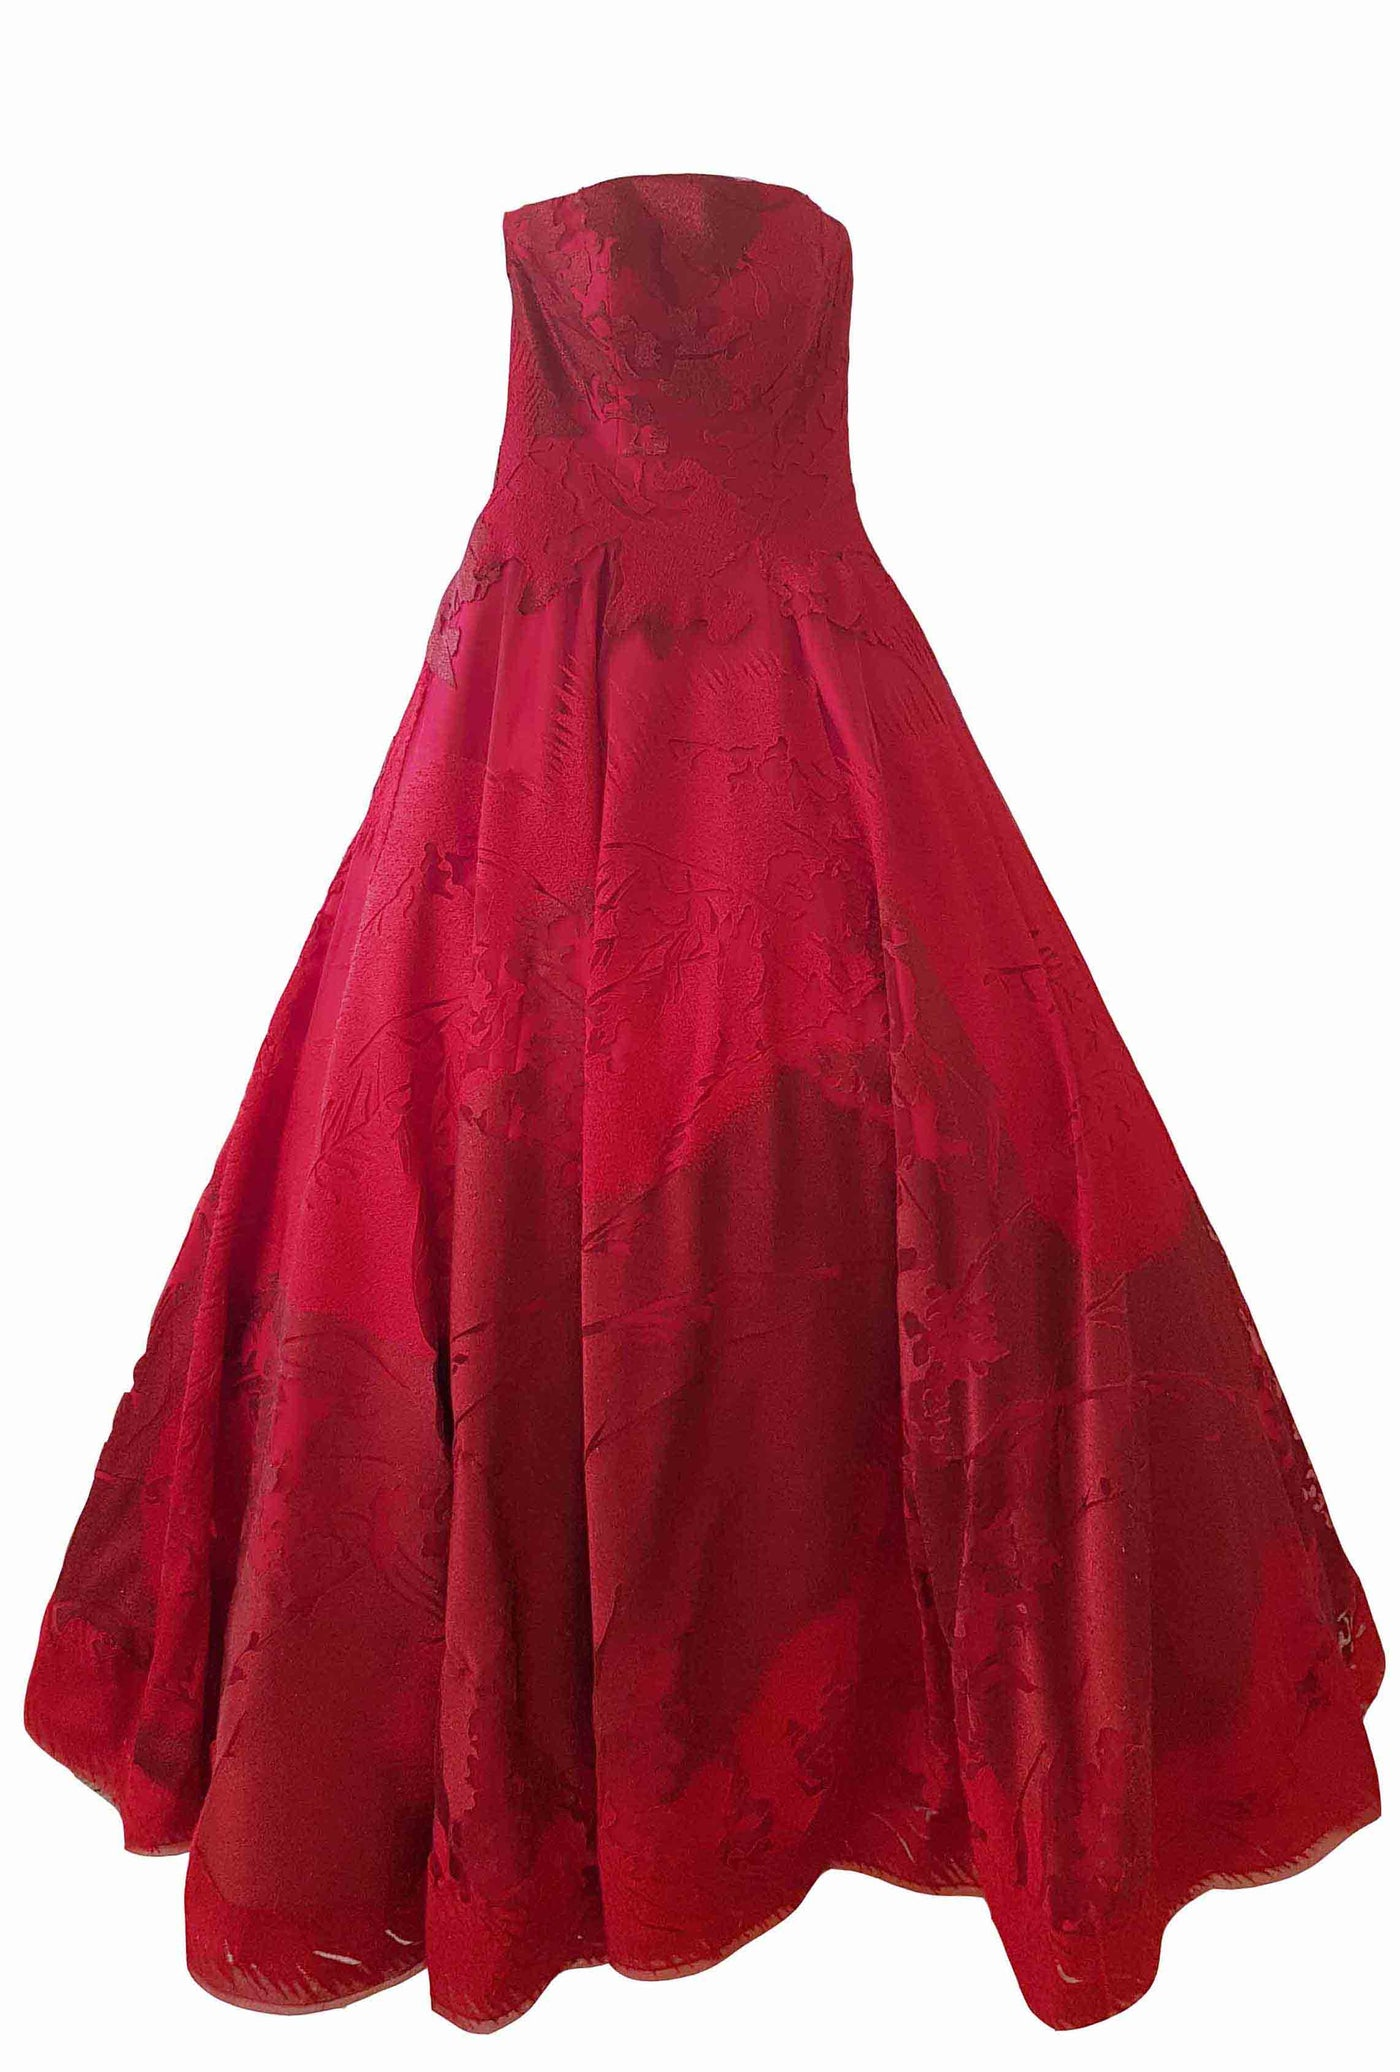 Rent: Hian Tjen Red Flower Ball Gown